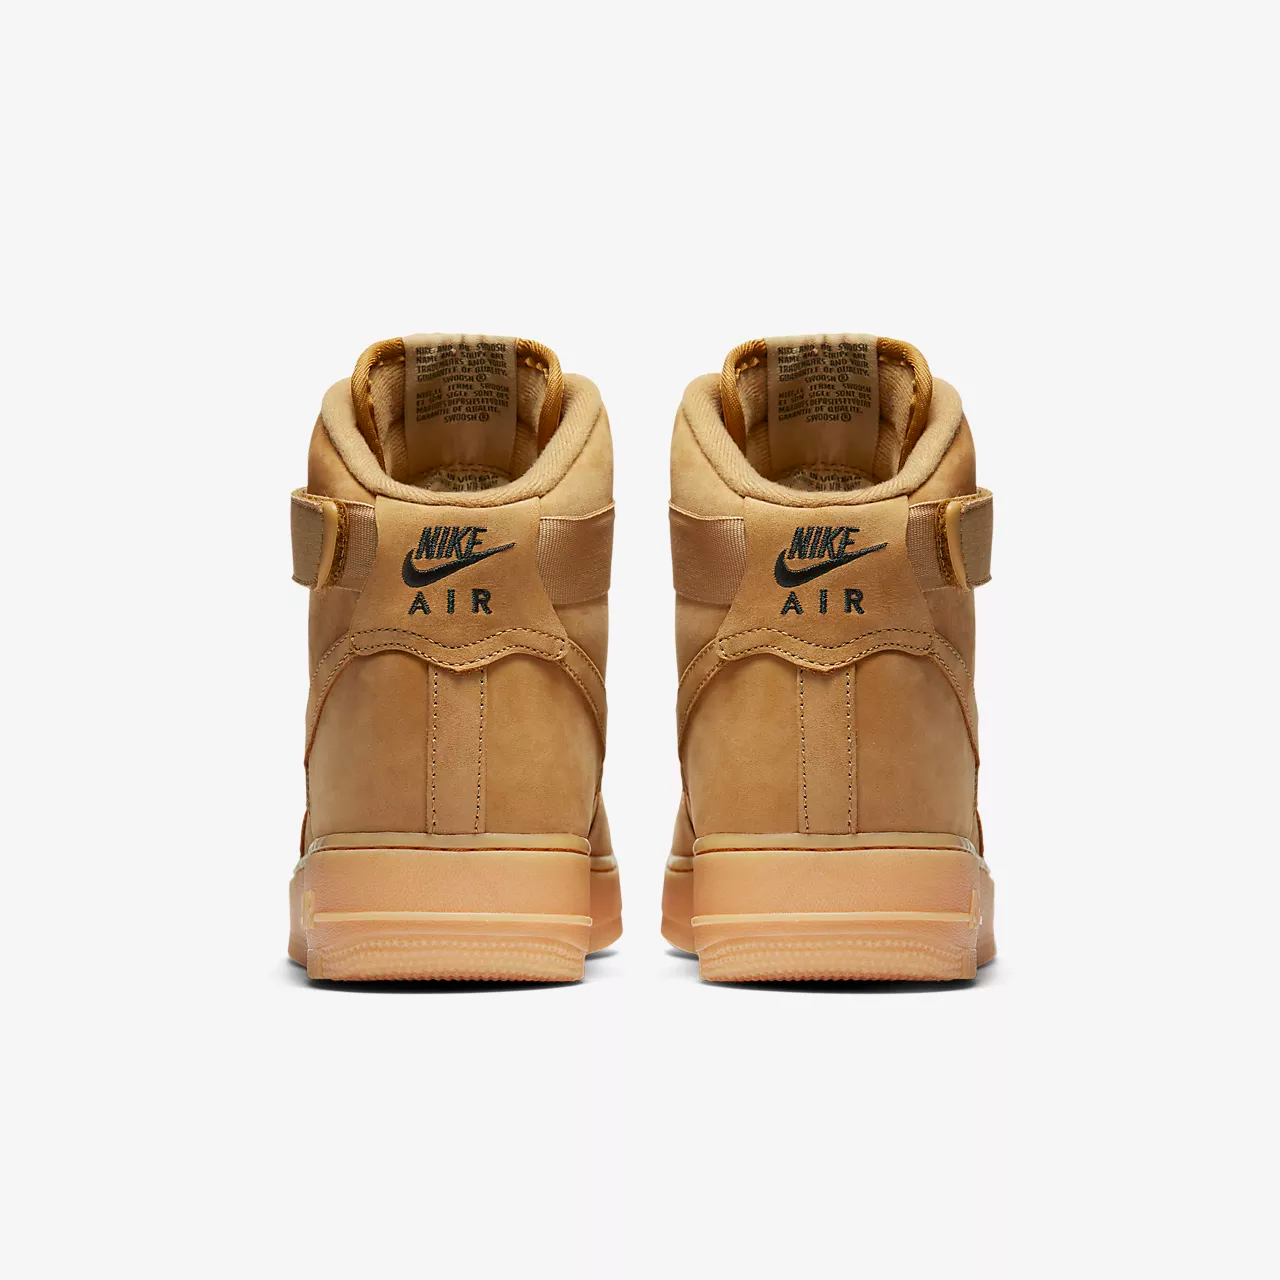 882096 200 Nike Air Force 1 High Flax 6